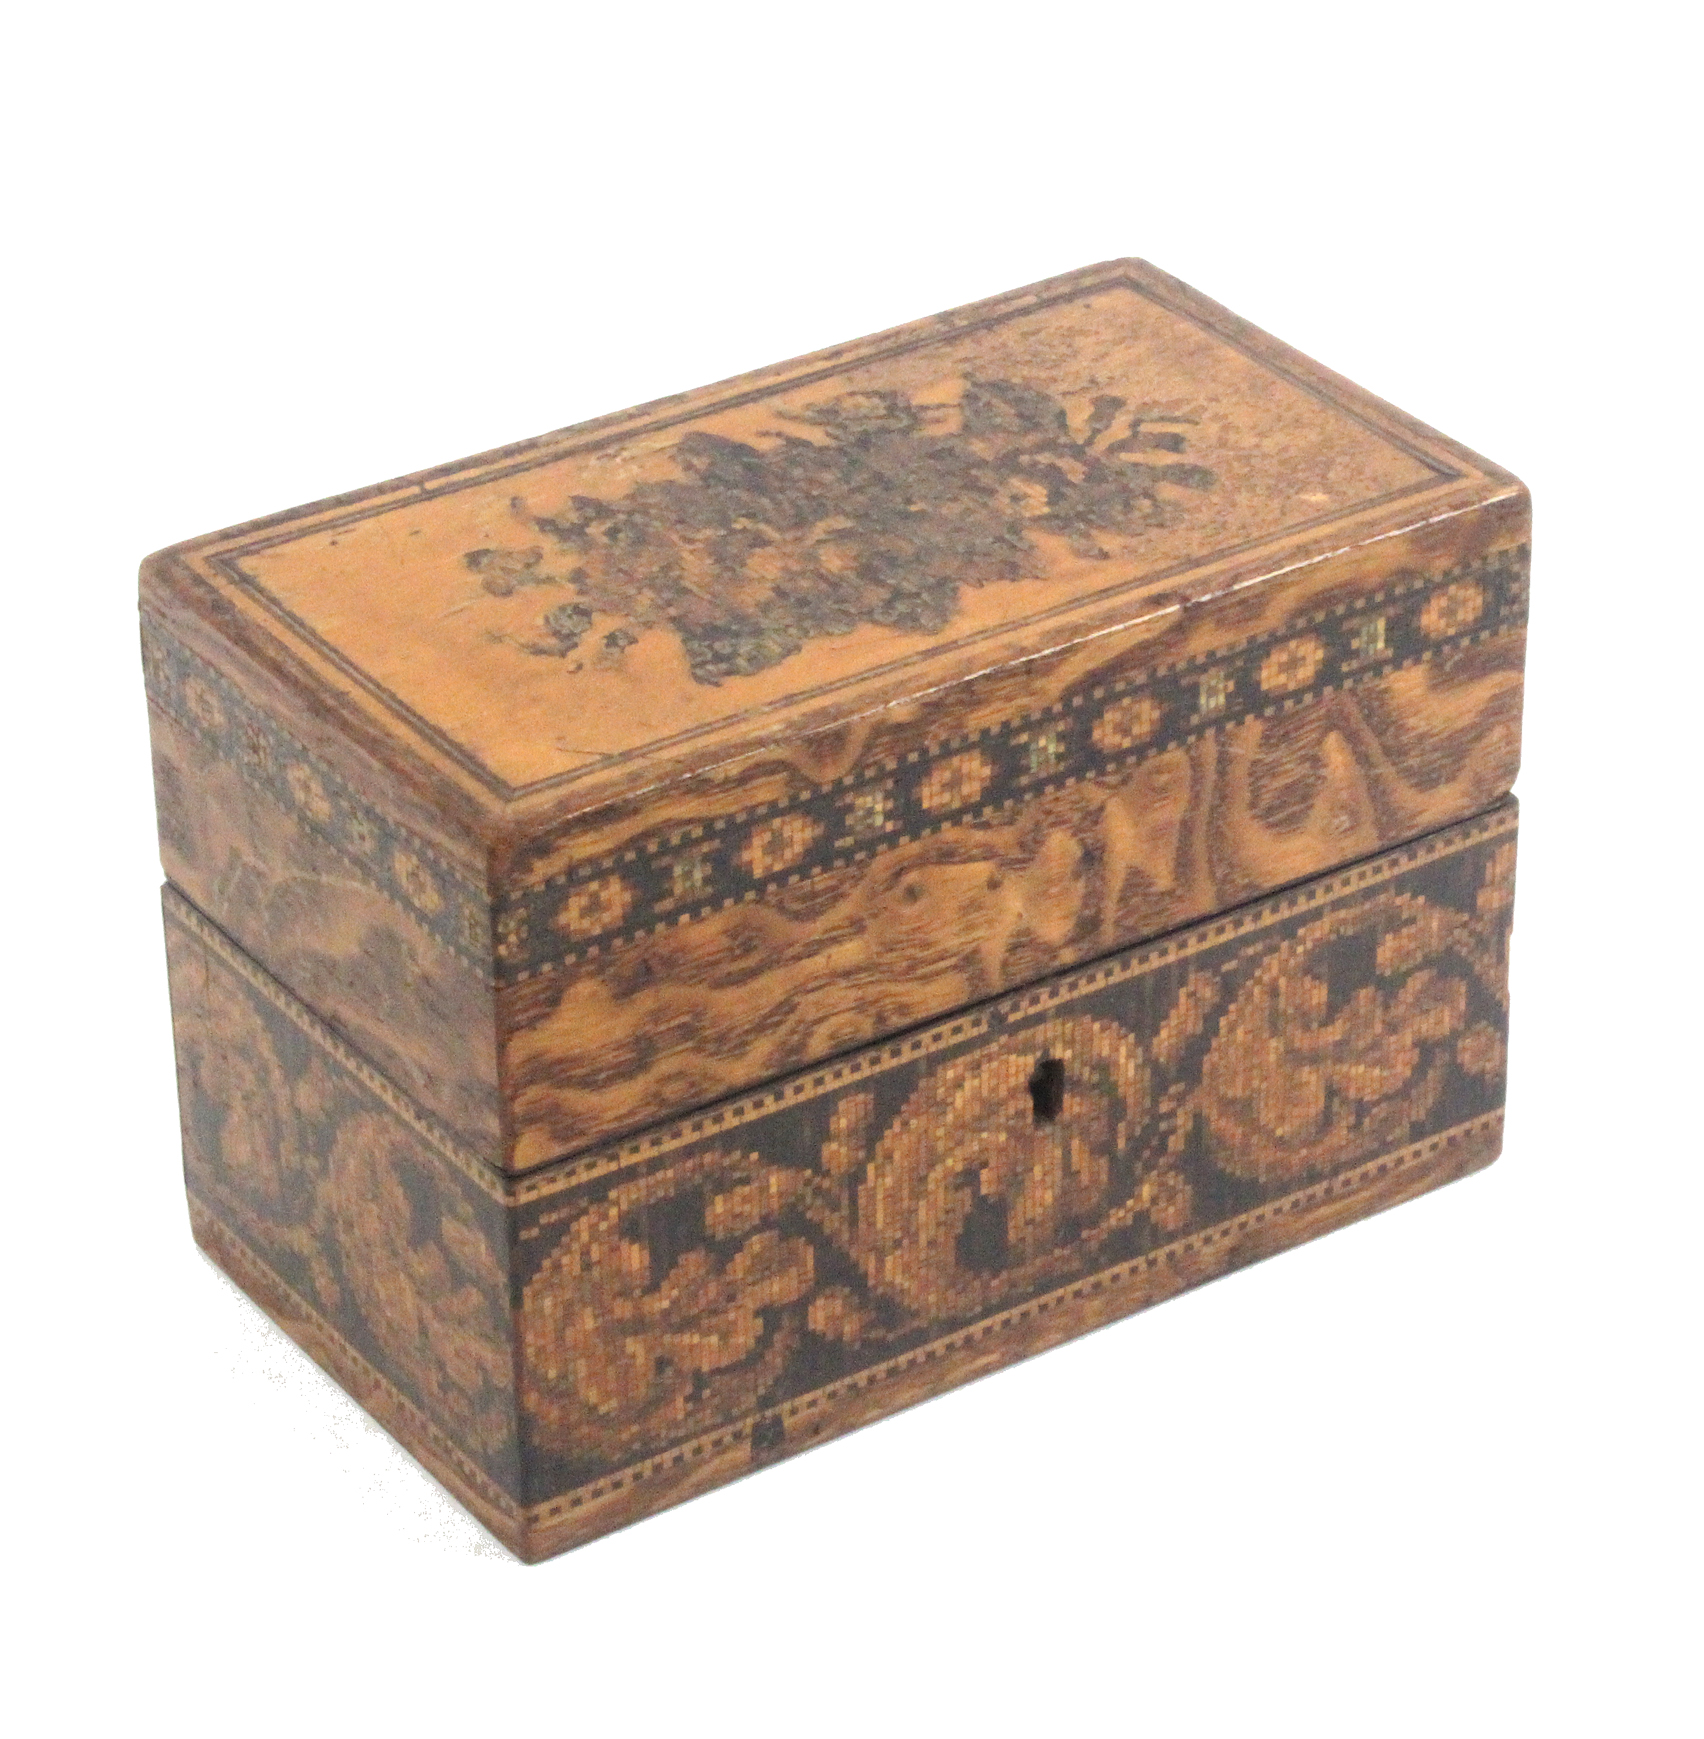 Lot 1 - A Tunbridge ware box by Edmund Nye, the lid inset with a floral mosaic, the sides with a band of